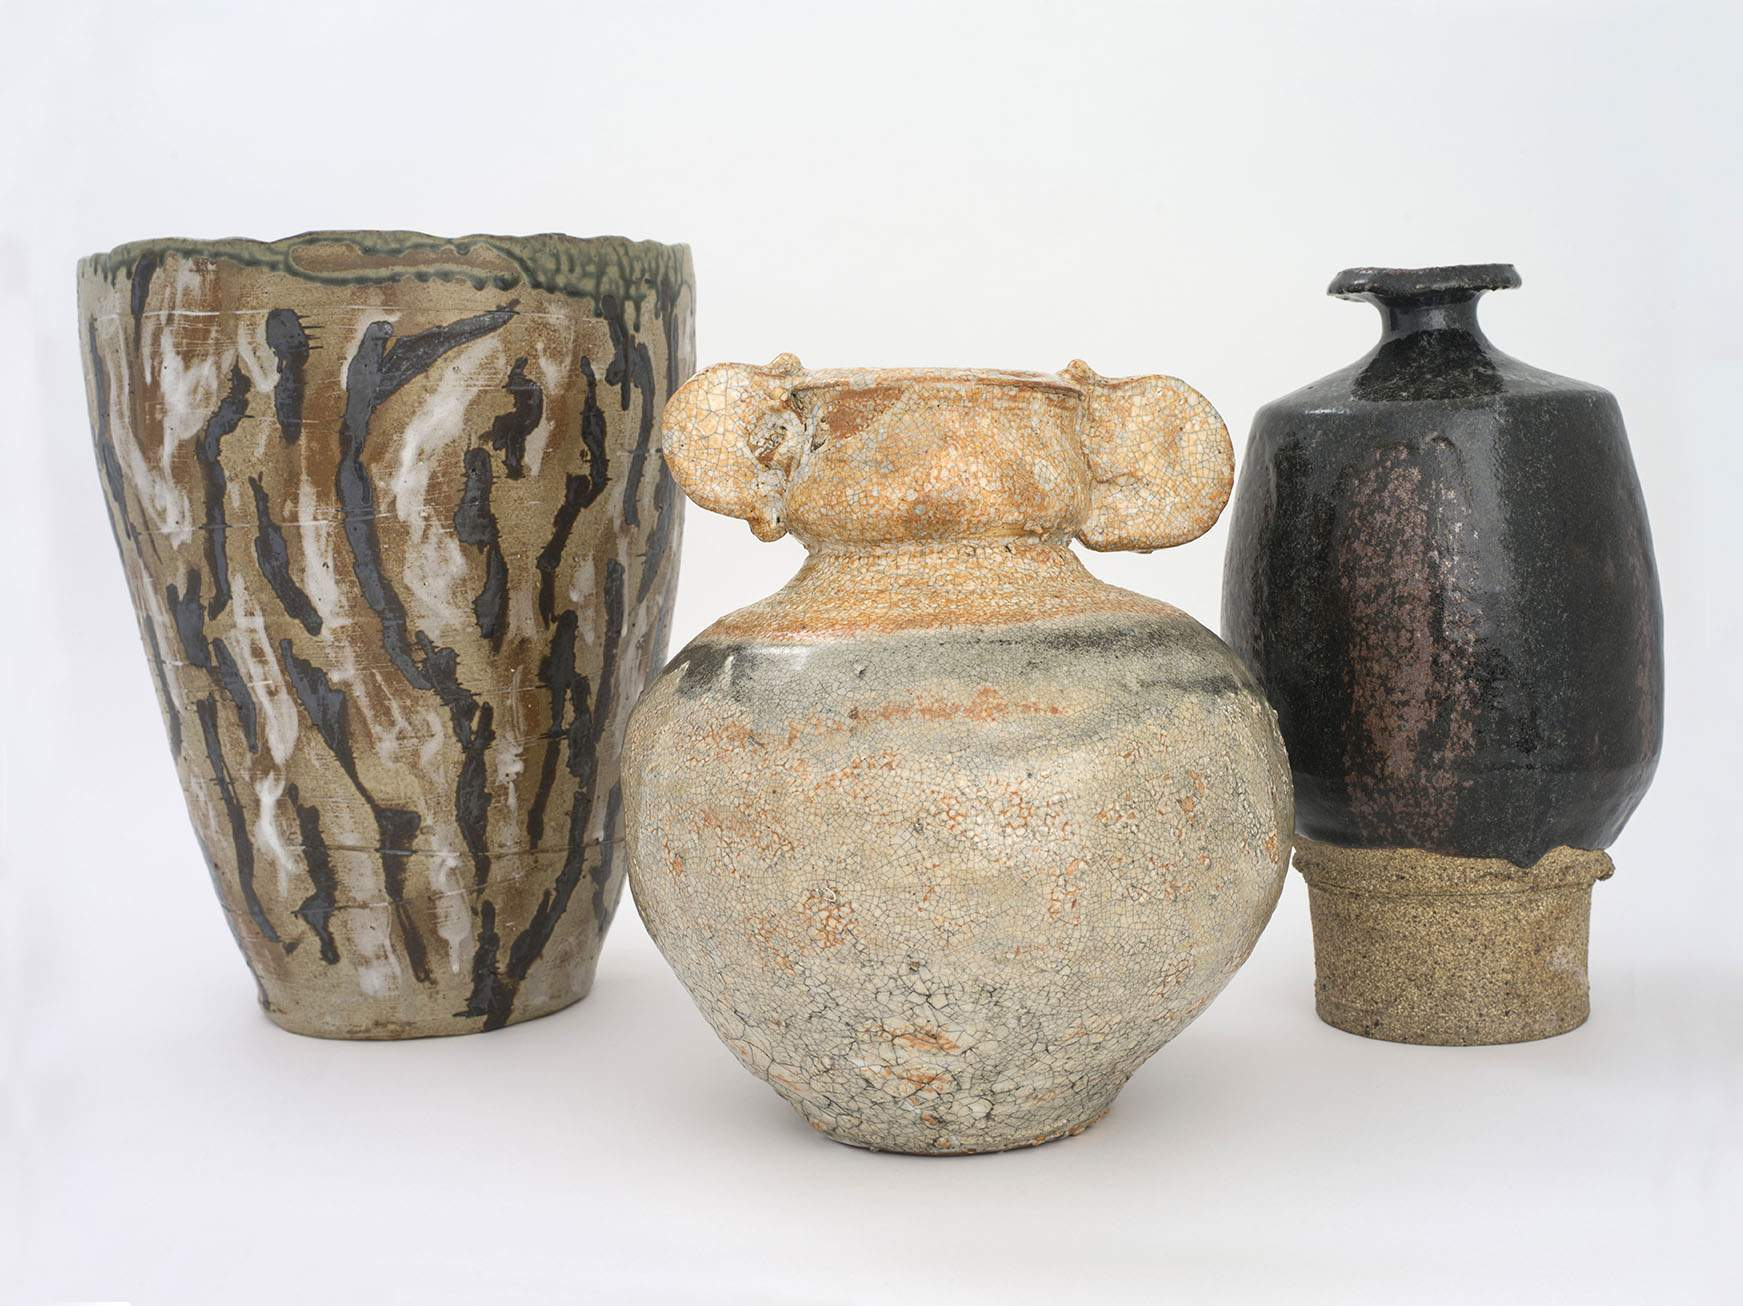 Earth and Fire: Ceramics from the QUT Art Collection